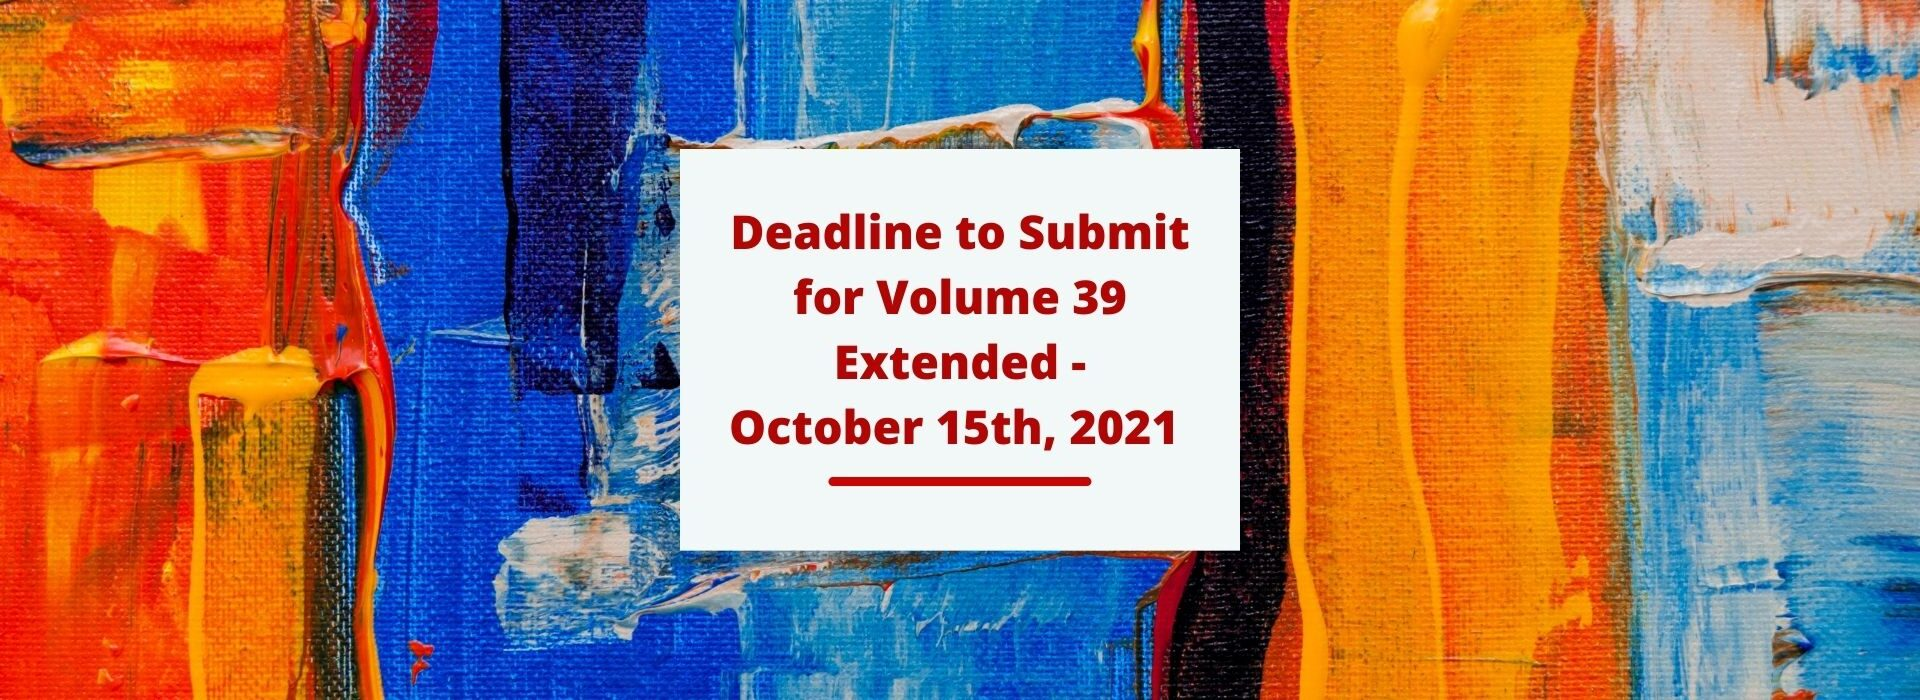 Permalink to: Vol. 39 Deadline Extended